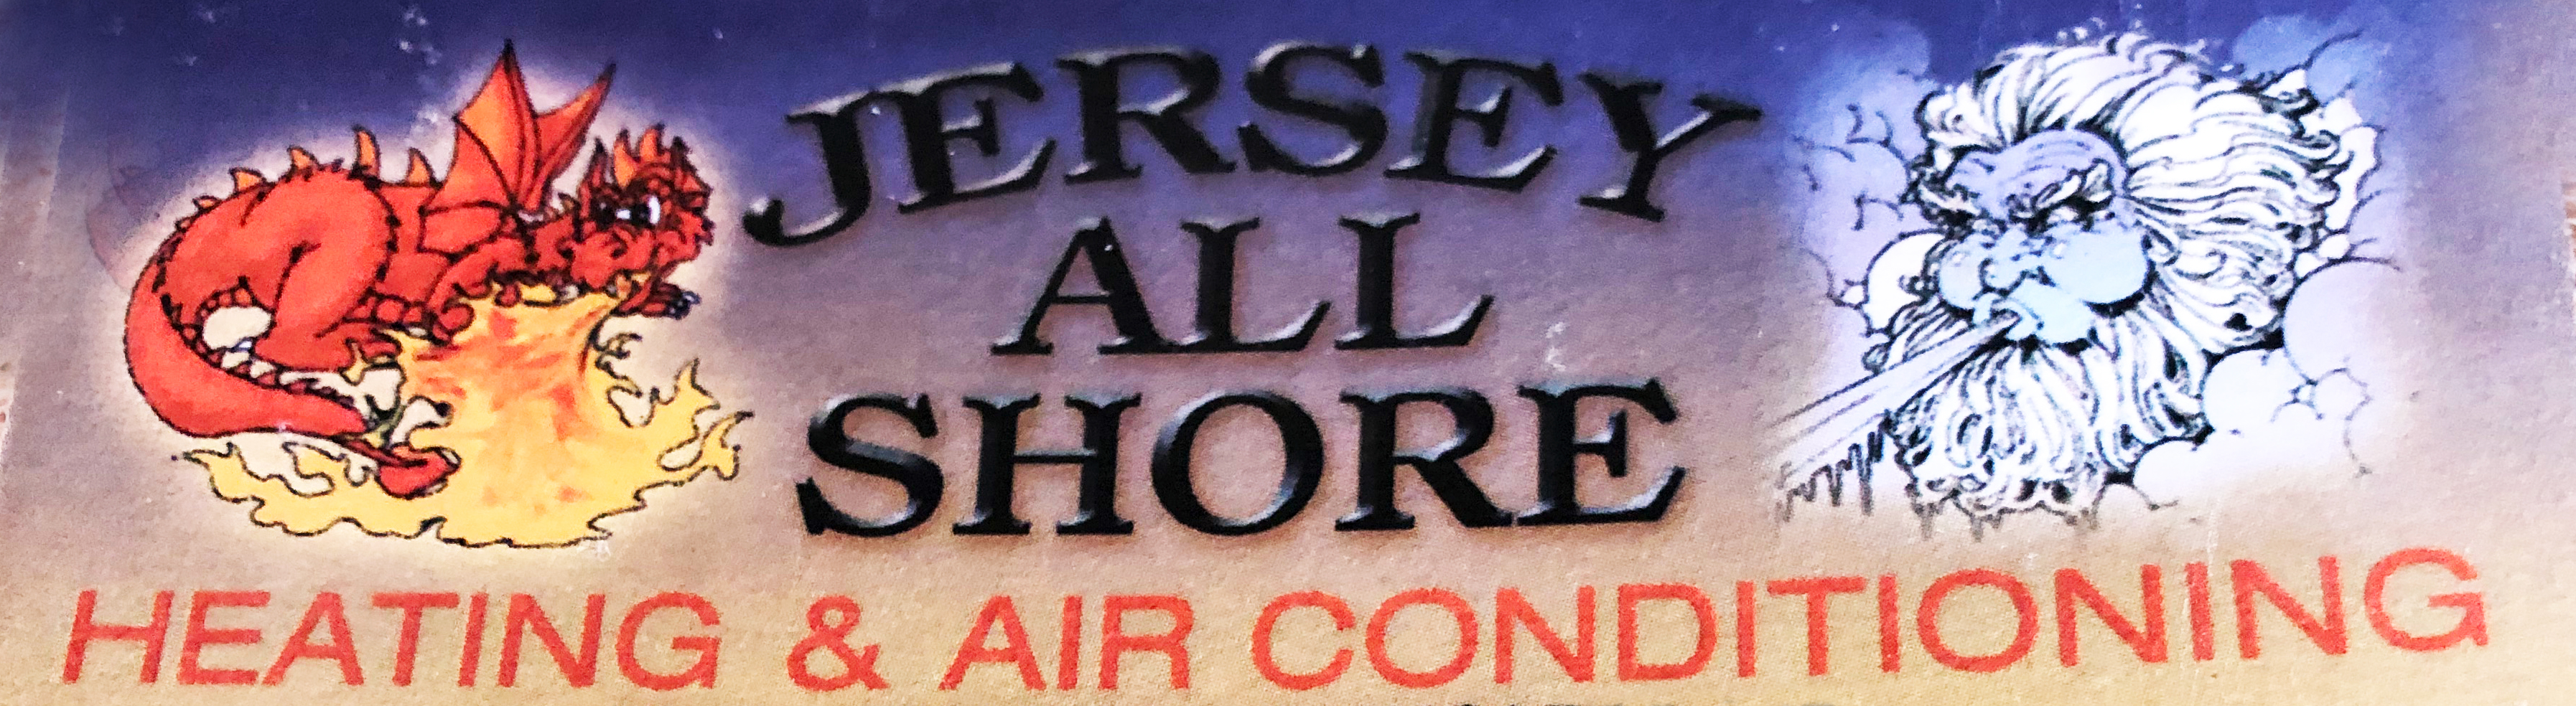 Jersey All Shore Heating & Air Condition